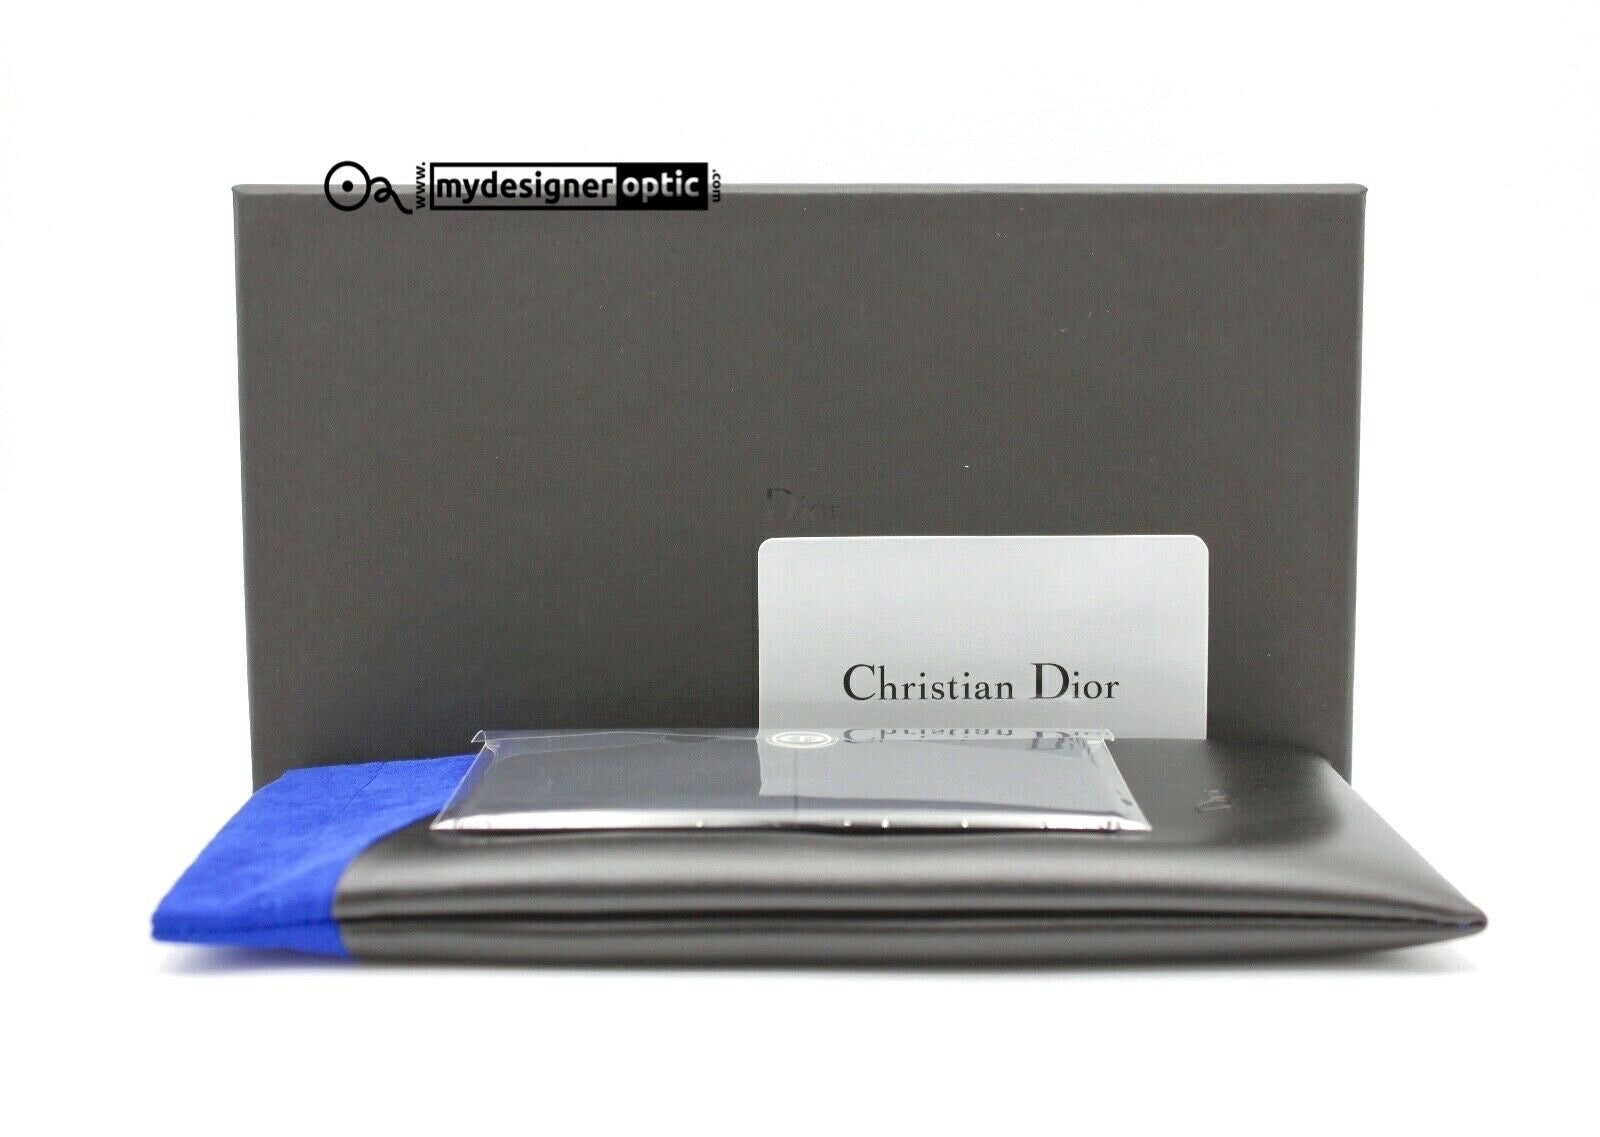 Christian Dior Sculpt OYGZ9 63-15-145 Made in Italy HS 3 (Real DEAD STOCK) - Mydesigneroptic